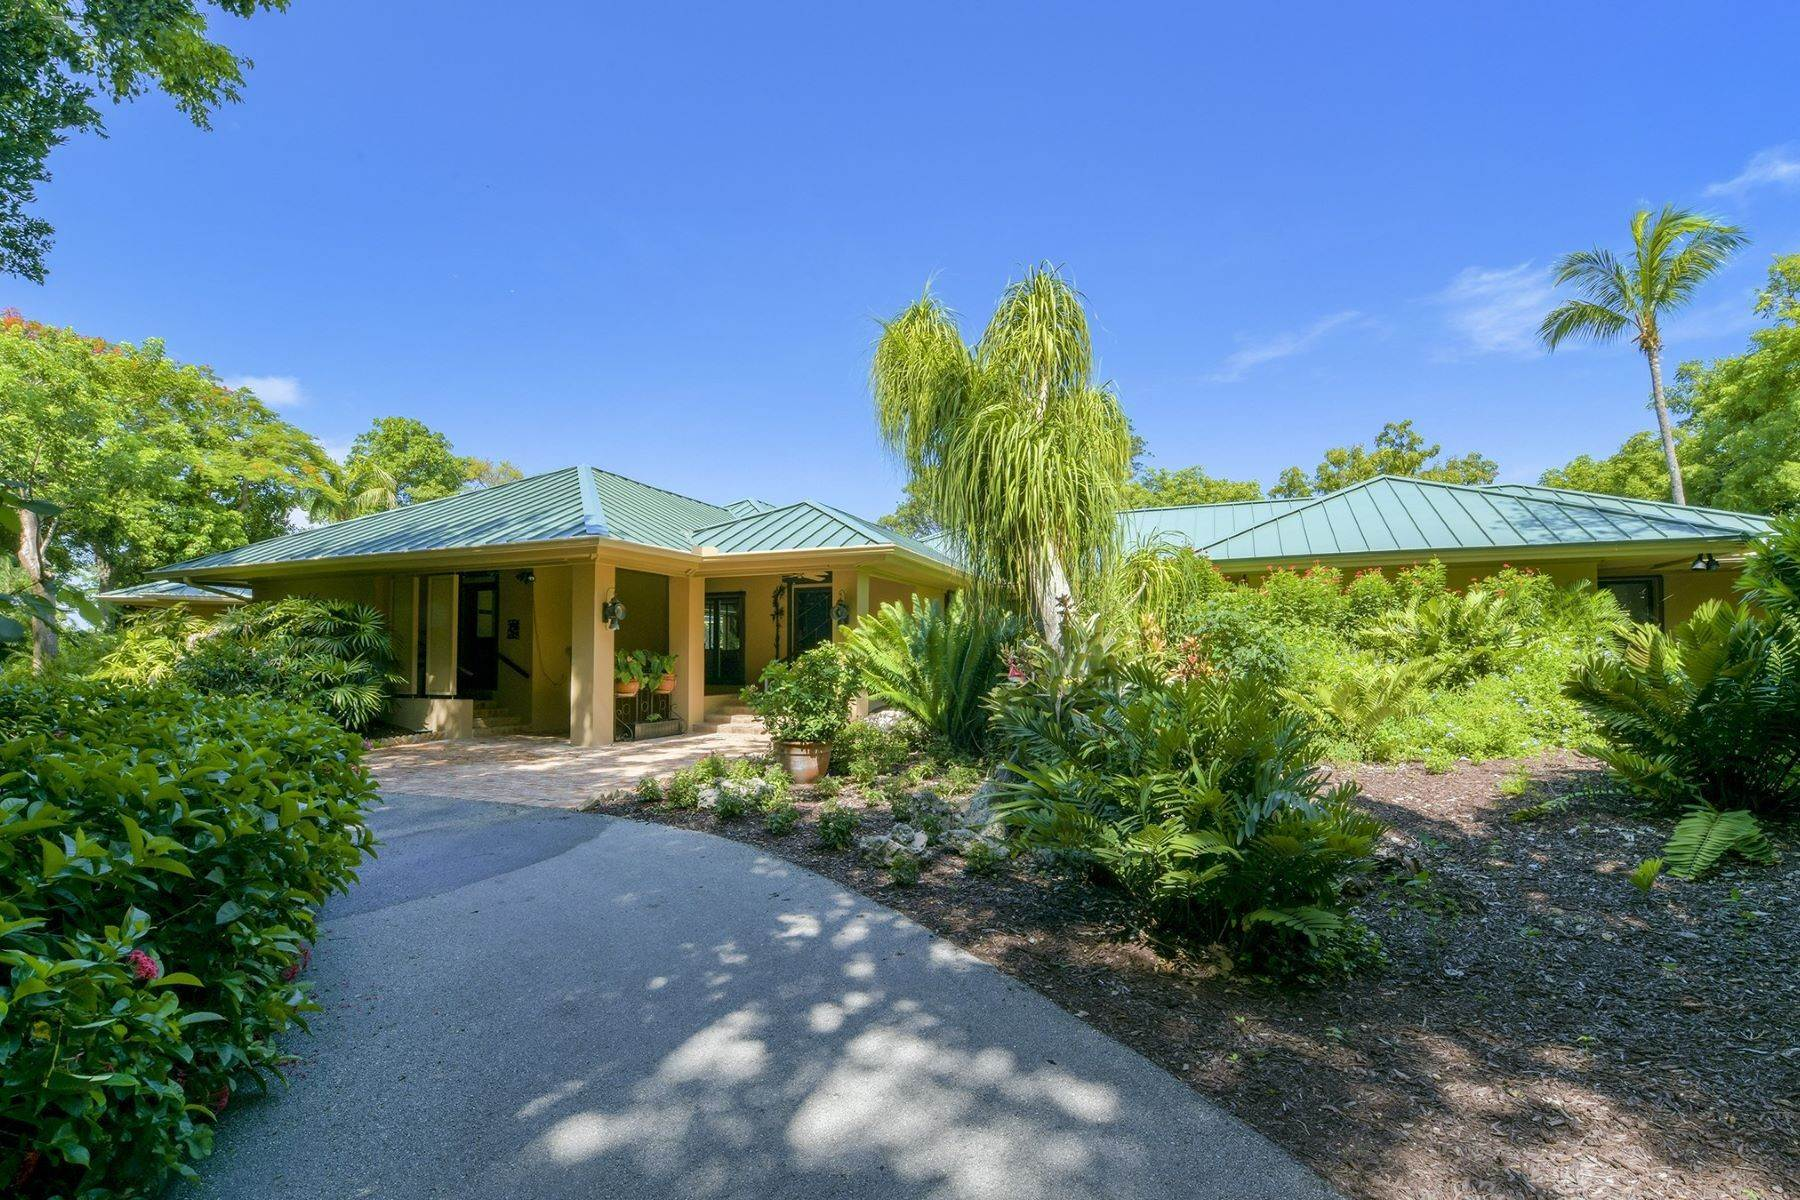 22. Property for Sale at 10 Cannon Point, Key Largo, FL Key Largo, Florida 33037 United States